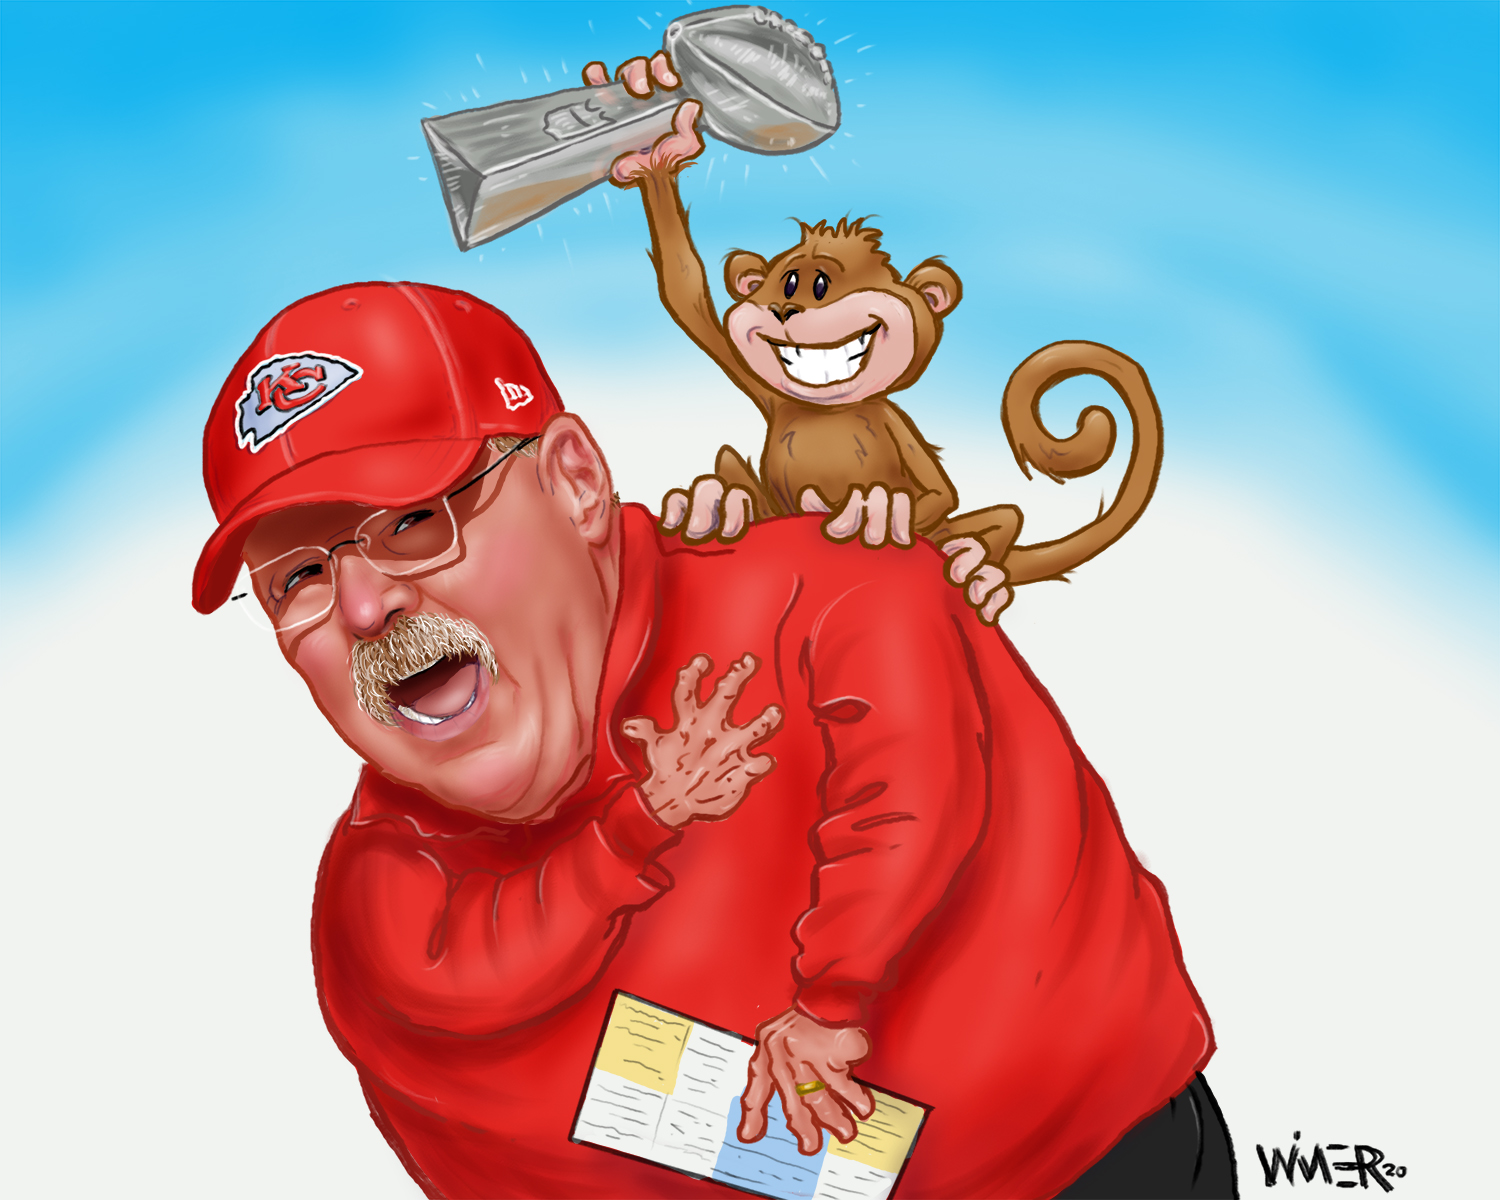 A week before the Super Bowl and Andy Reid is back for another swing at the big hardware, after barely missing with the Eagles 16 years ago, and deep runs in the playoffs with the Chiefs. After 21 years as head coach and arguably top 3 in the profession, can his team break through and shake that monkey off his back?